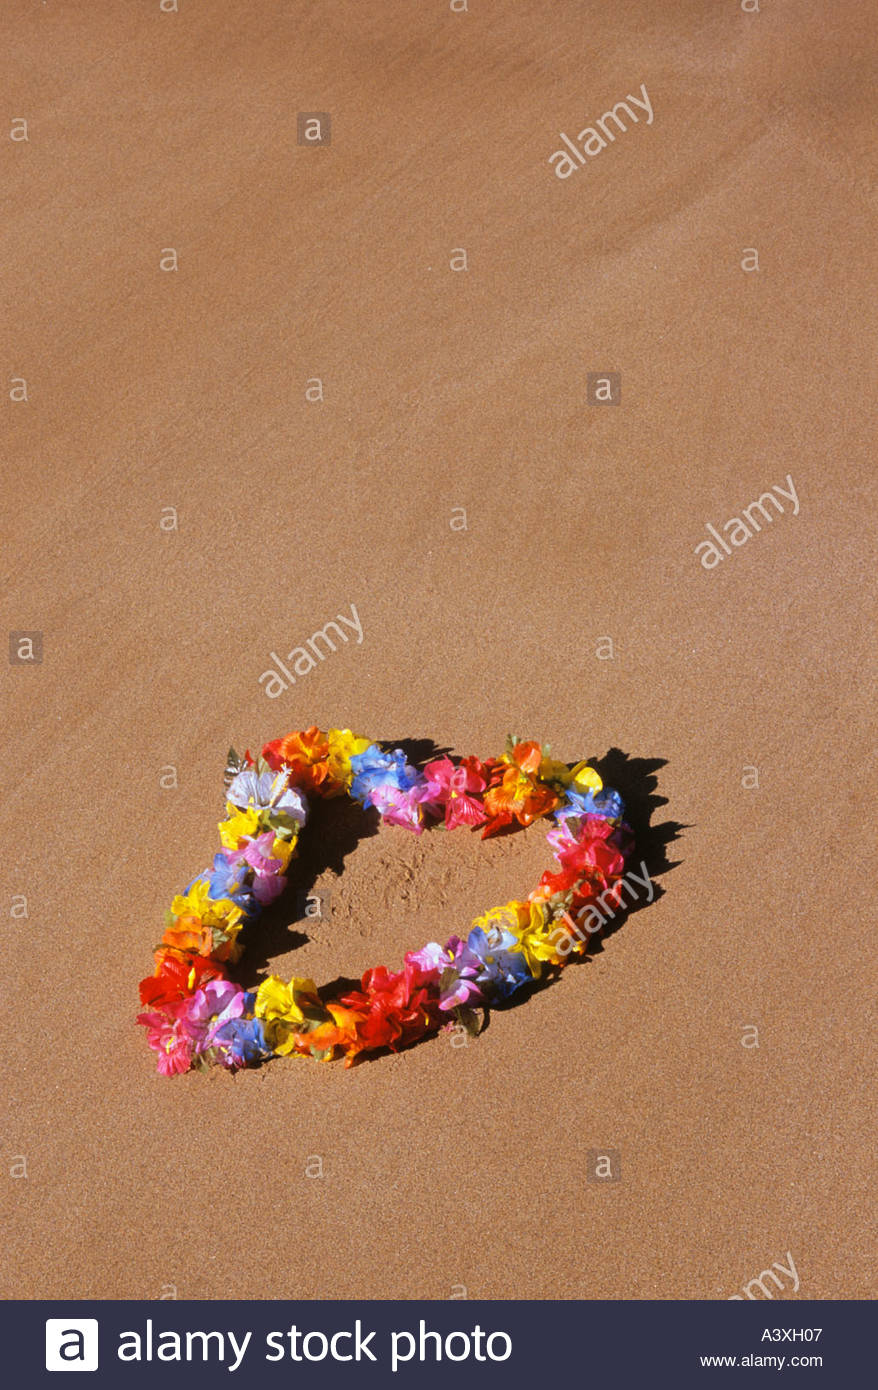 Flower garland or lei on the beach at wailea on the island of maui flower garland or lei on the beach at wailea on the island of maui in the state of hawaii usa izmirmasajfo Images